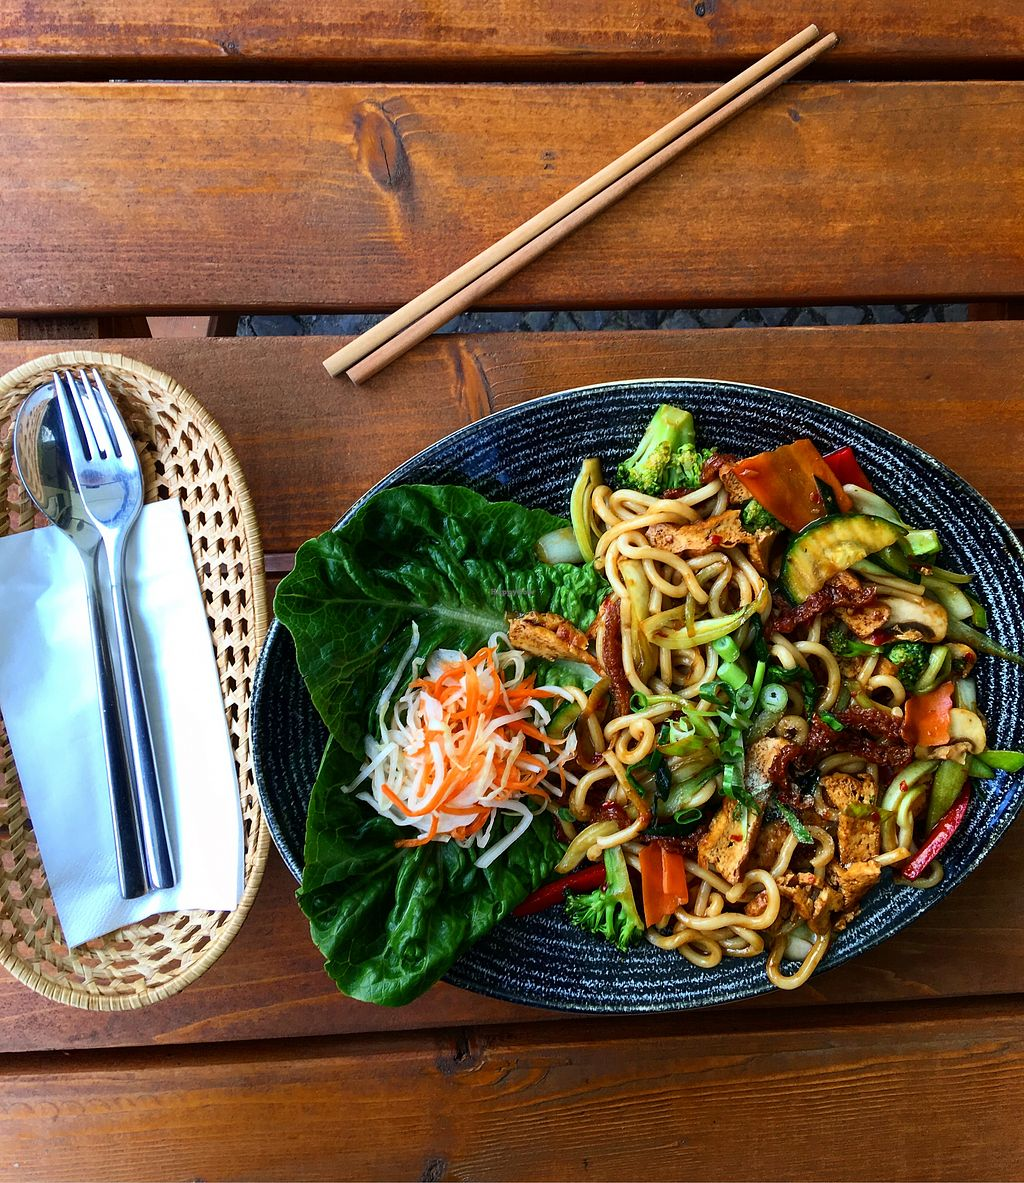 "Photo of Chay Long  by <a href=""/members/profile/Stefanus"">Stefanus</a> <br/>Udon noodles with organic tofu <br/> April 24, 2018  - <a href='/contact/abuse/image/91970/390616'>Report</a>"